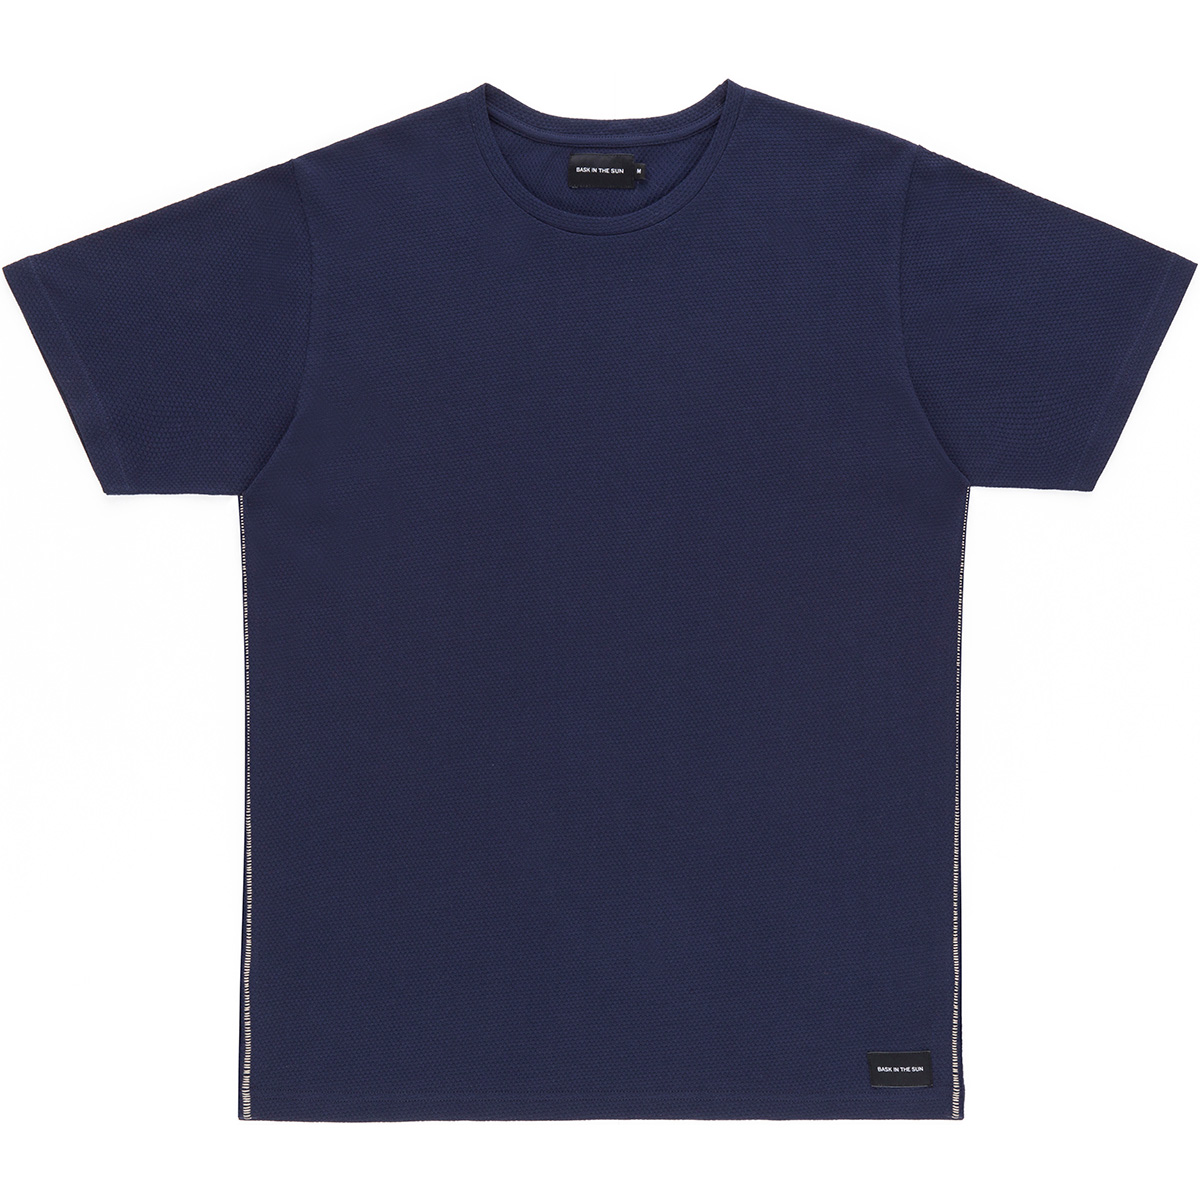 Bask in the Sun - T-shirt en coton bio navy gamiz